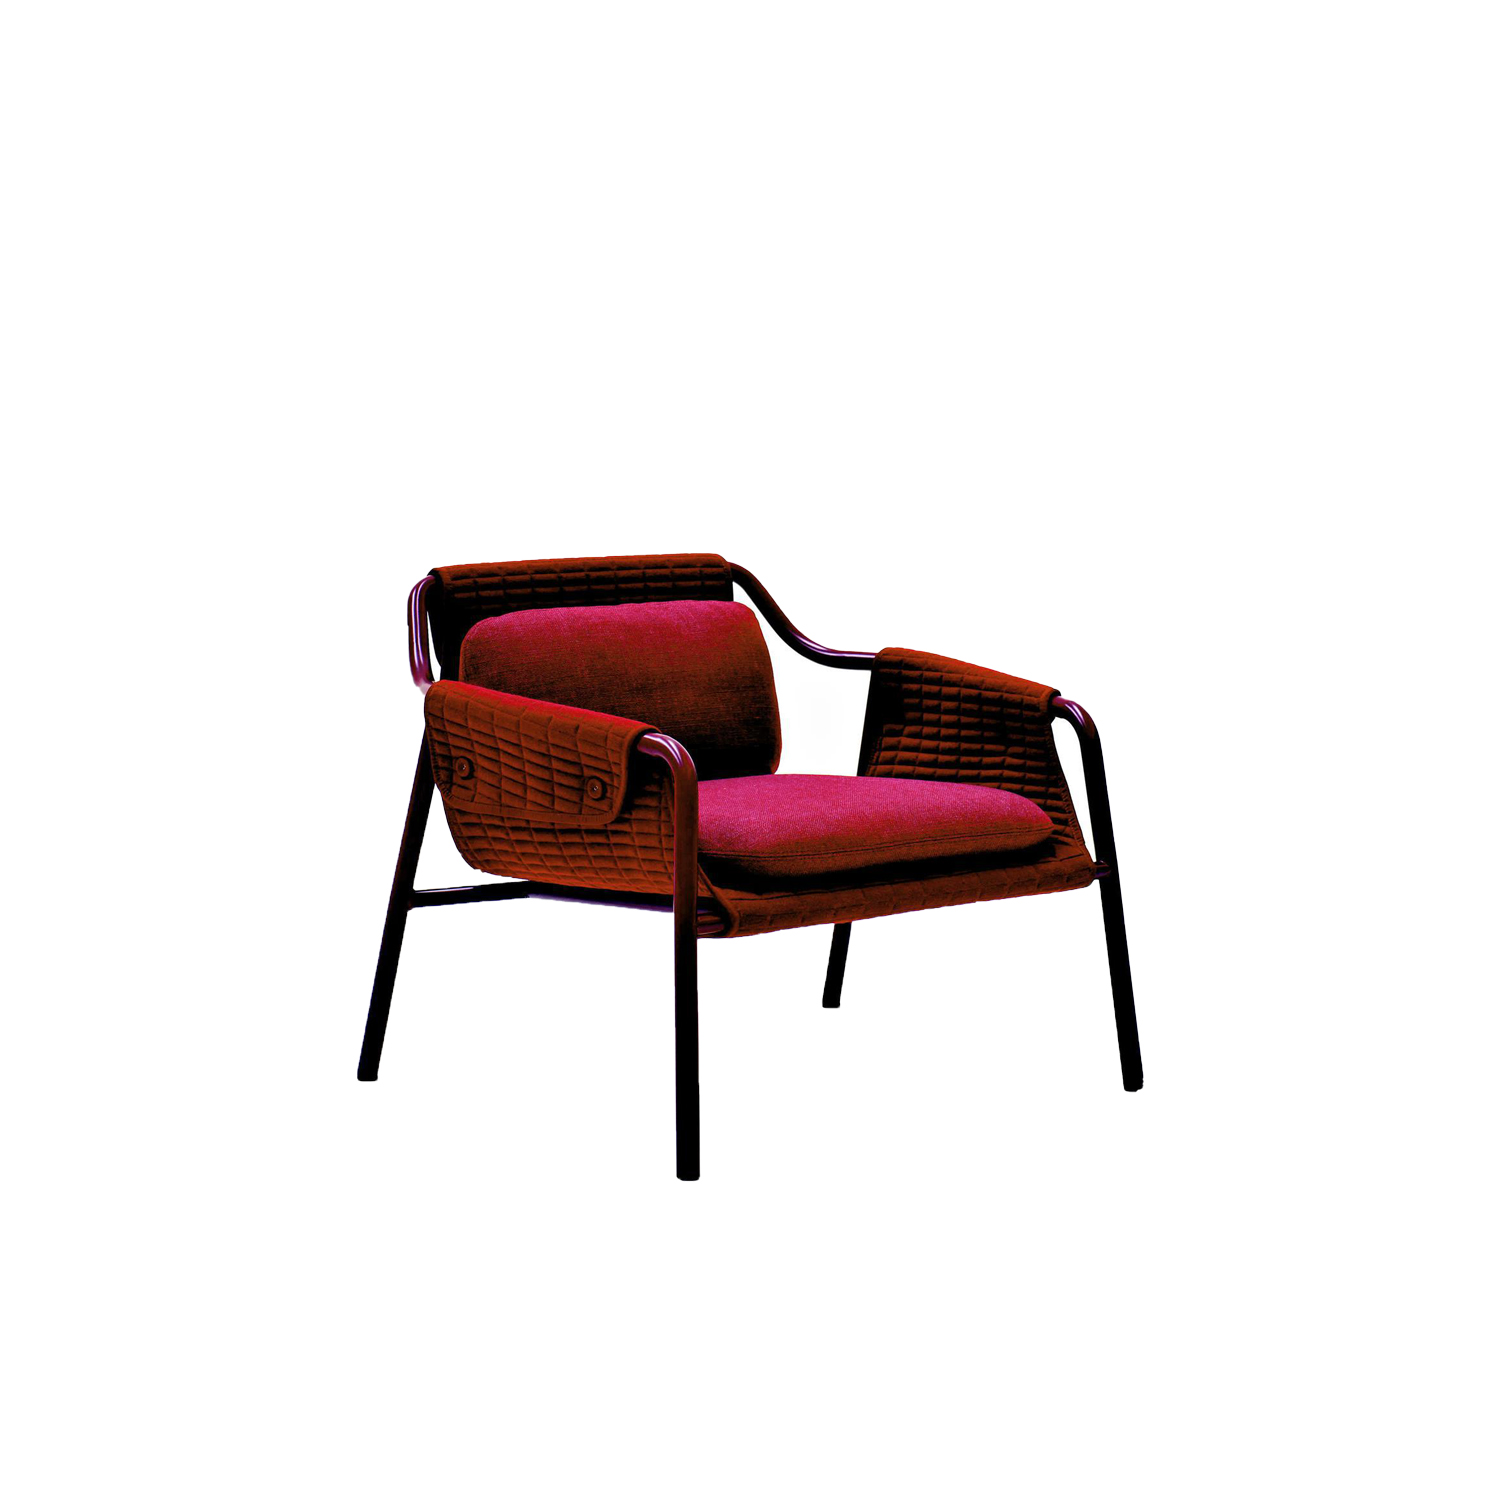 Jacket Armchair  - Drawing evident inspiration from the fashion world, Jacket armchair now appears in a renewed version, with revamped sartorial details and new colours for its sleek and slender metal frame. The quilted fabric, in addition to dressing the piece, forms its soft, cosy shell, with edging reminiscent of a jacket lapel. Two cushions add a sense of snug comfort.